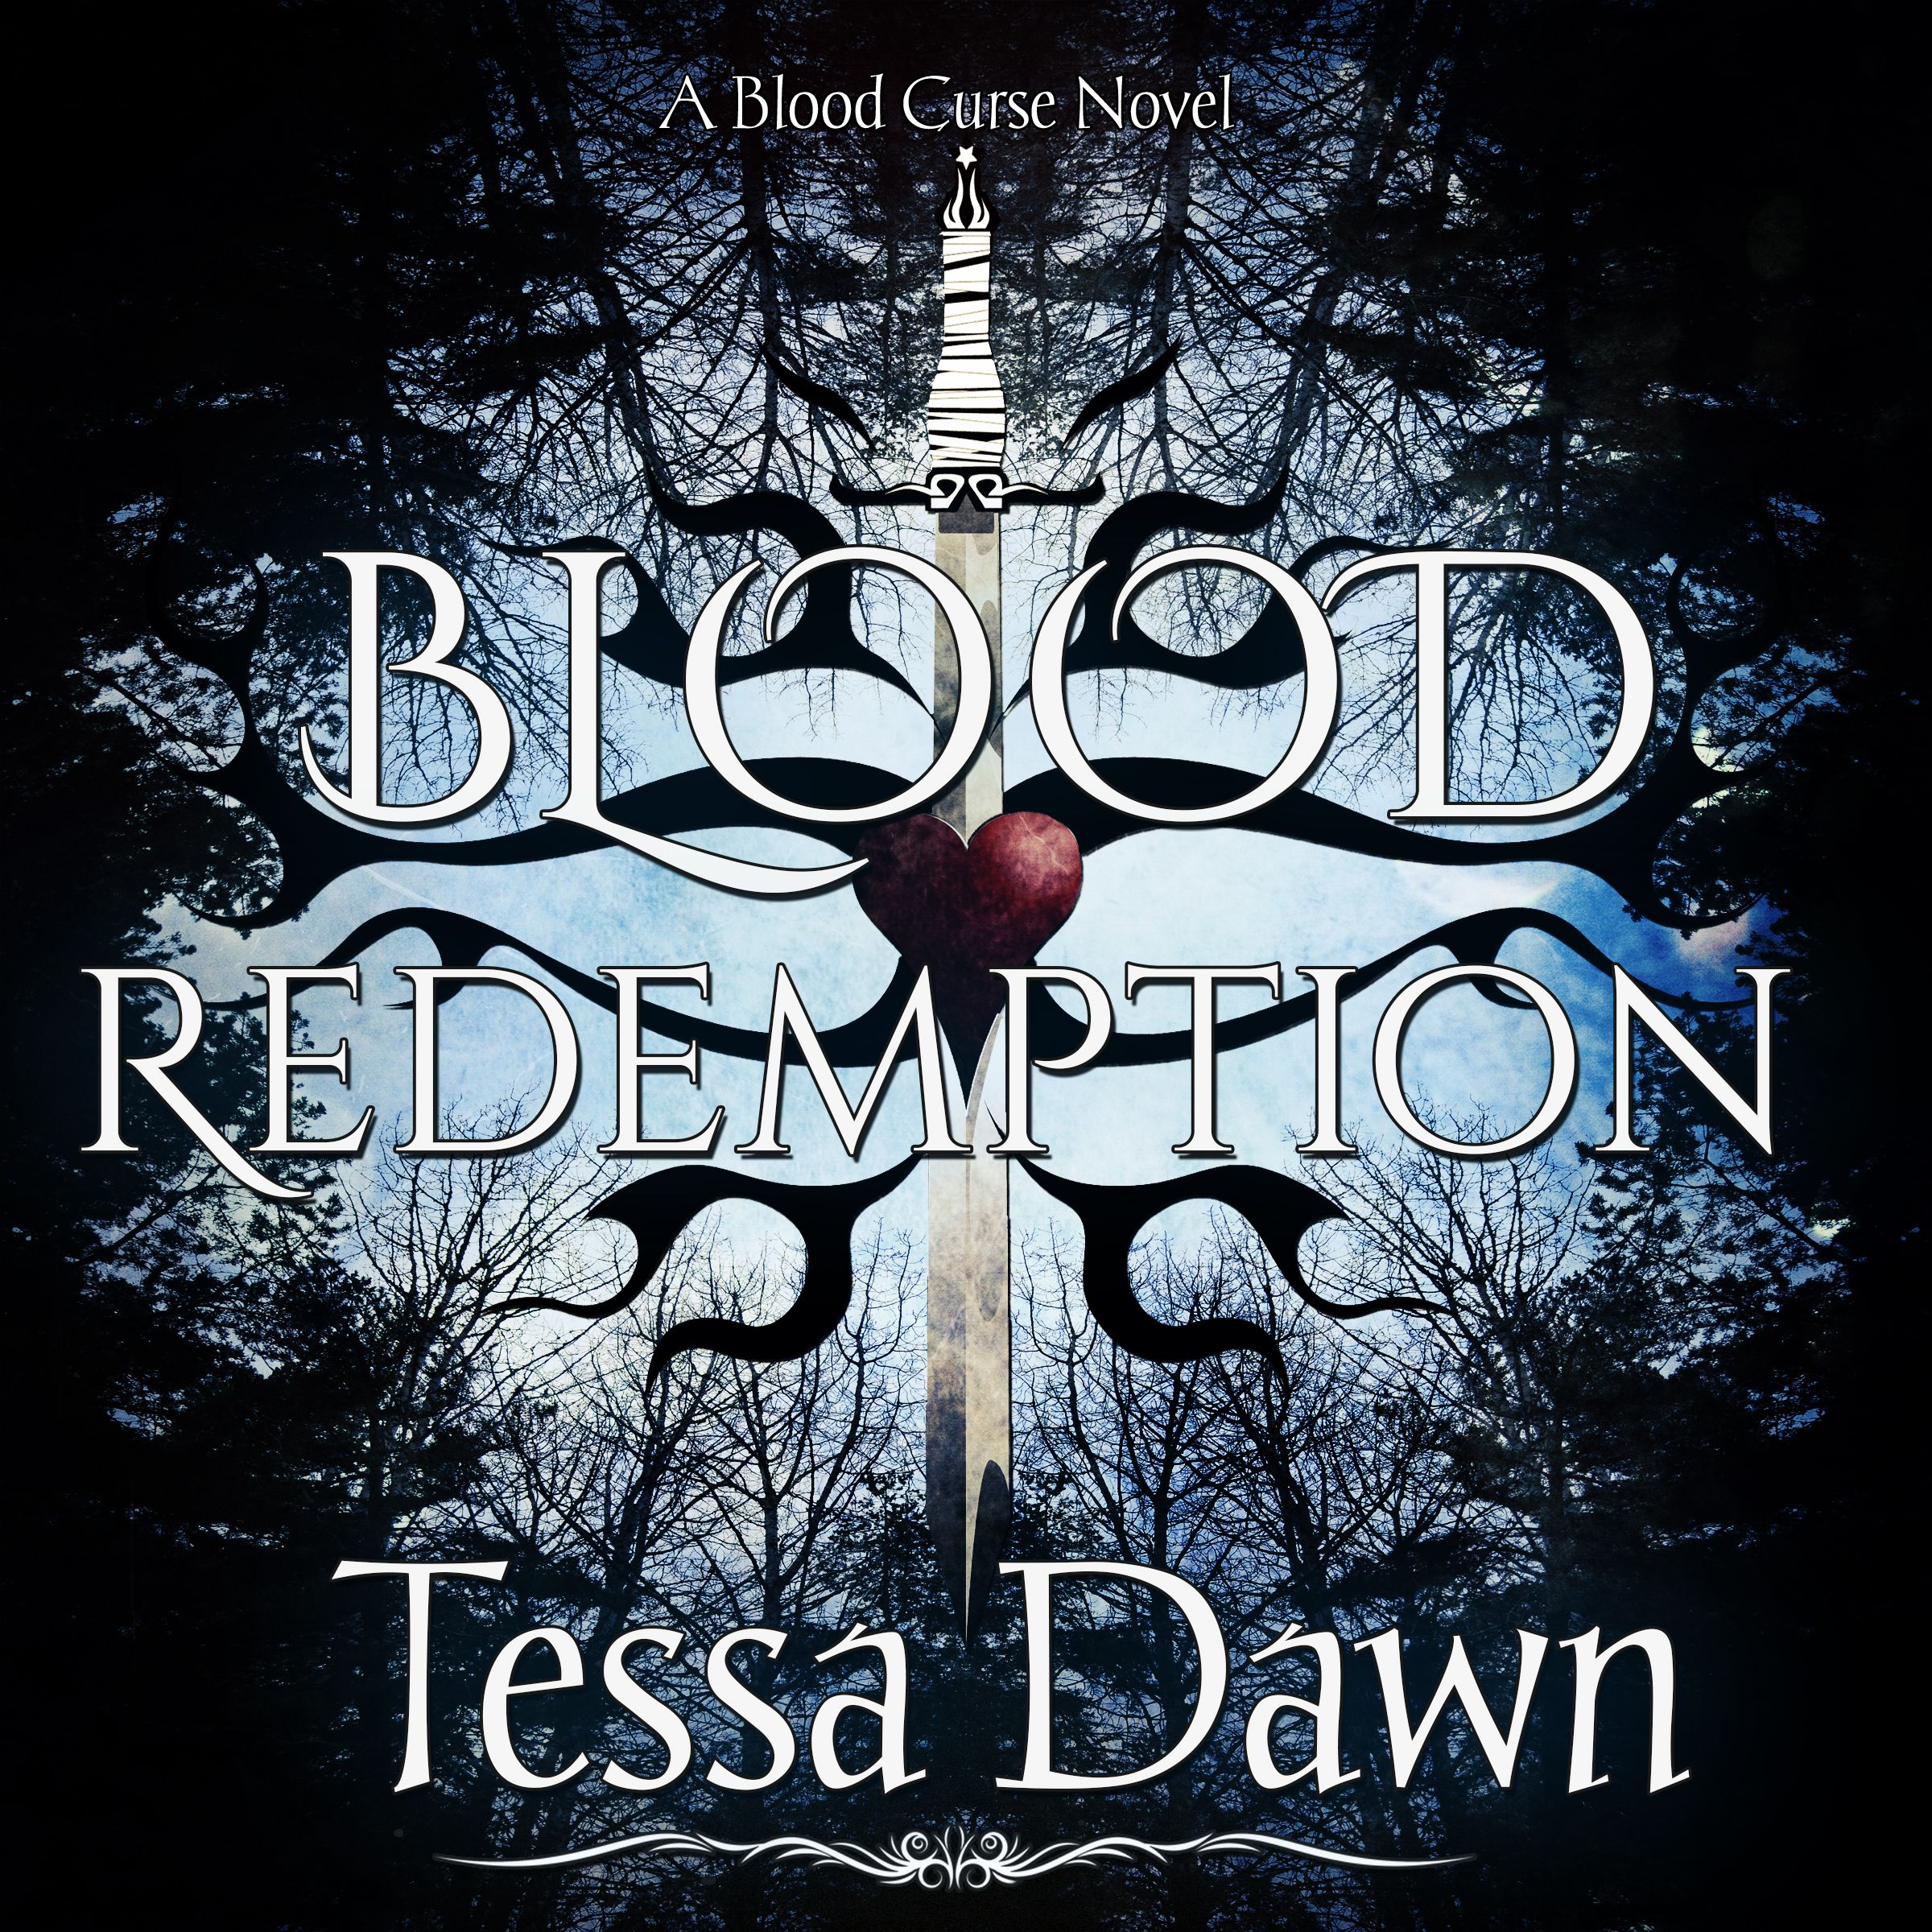 Blood Redemption, Book #5 In The Blood Curse Series, Is Now Available On